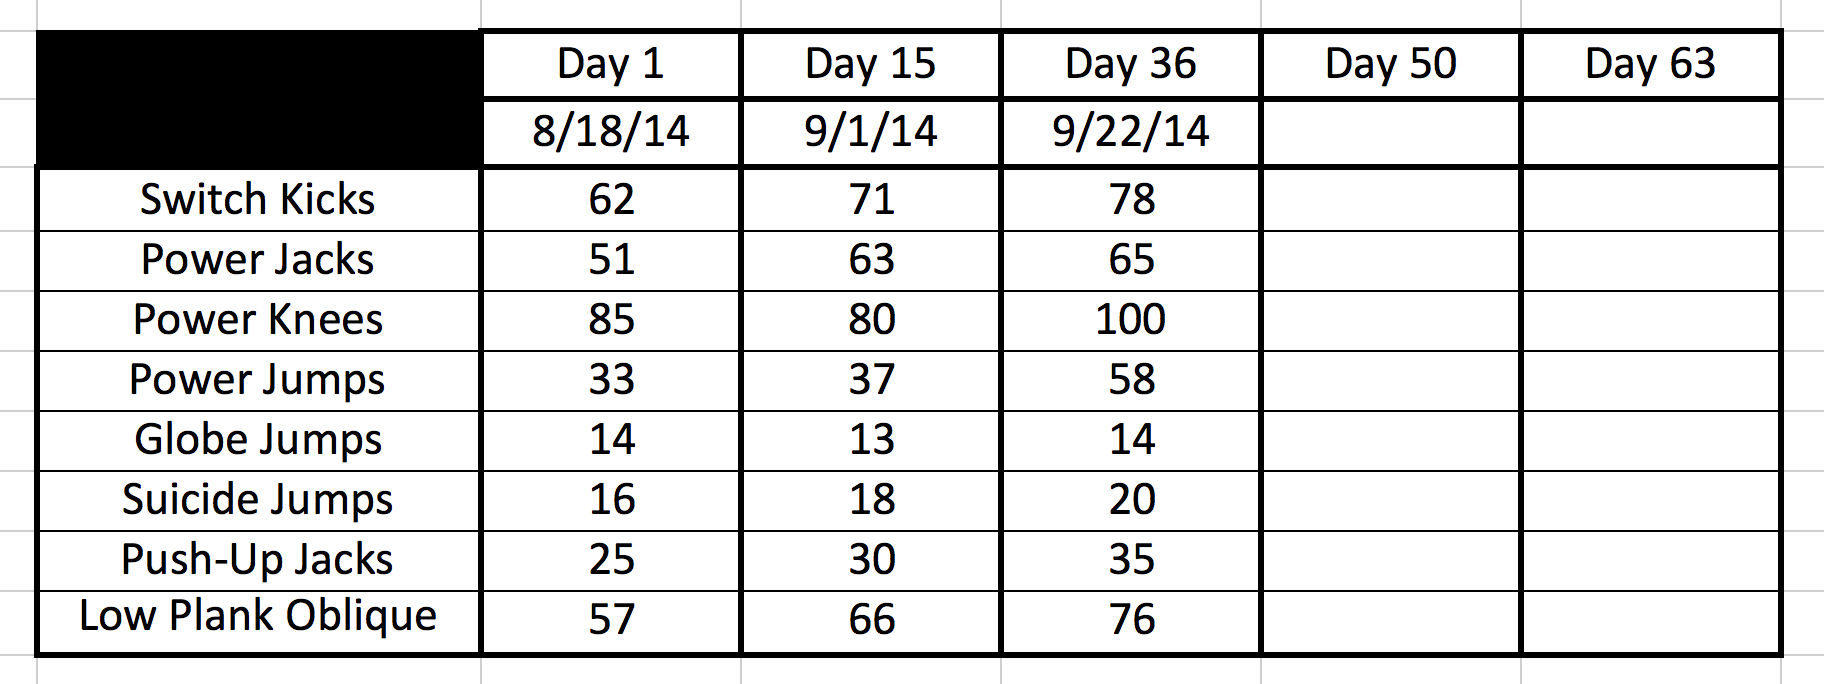 Insanity Fit Test Tracking Sheet Insanity Fit Test 9-22-14